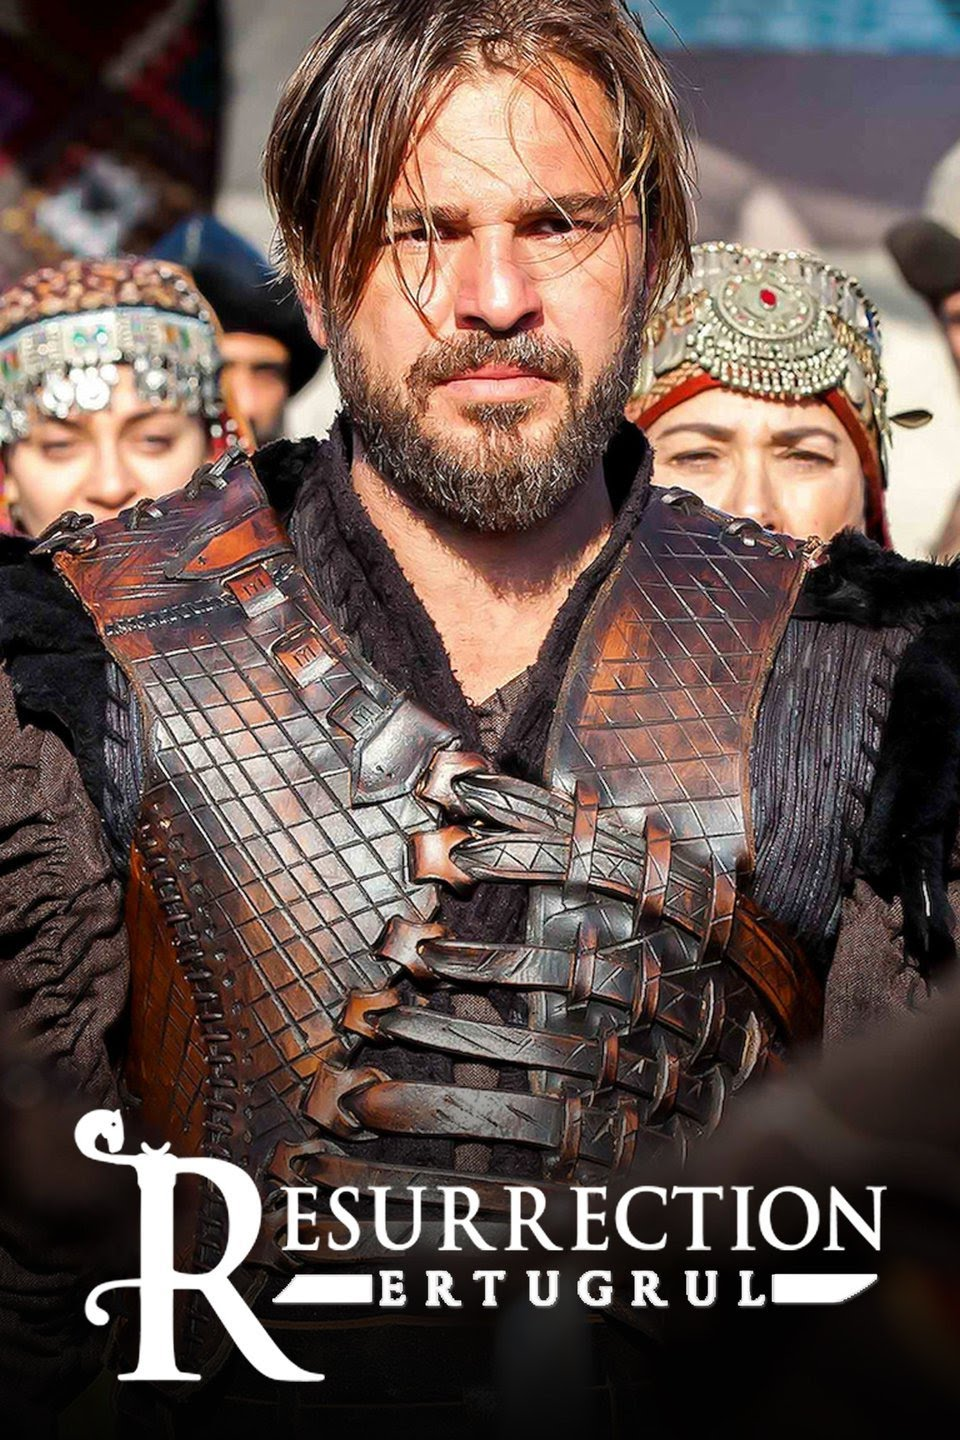 Download Dirilis: Ertugrul (Season 1-2) All Episode Turkish Drama Series {Hindi/Urdu Dubbed} 720p HD